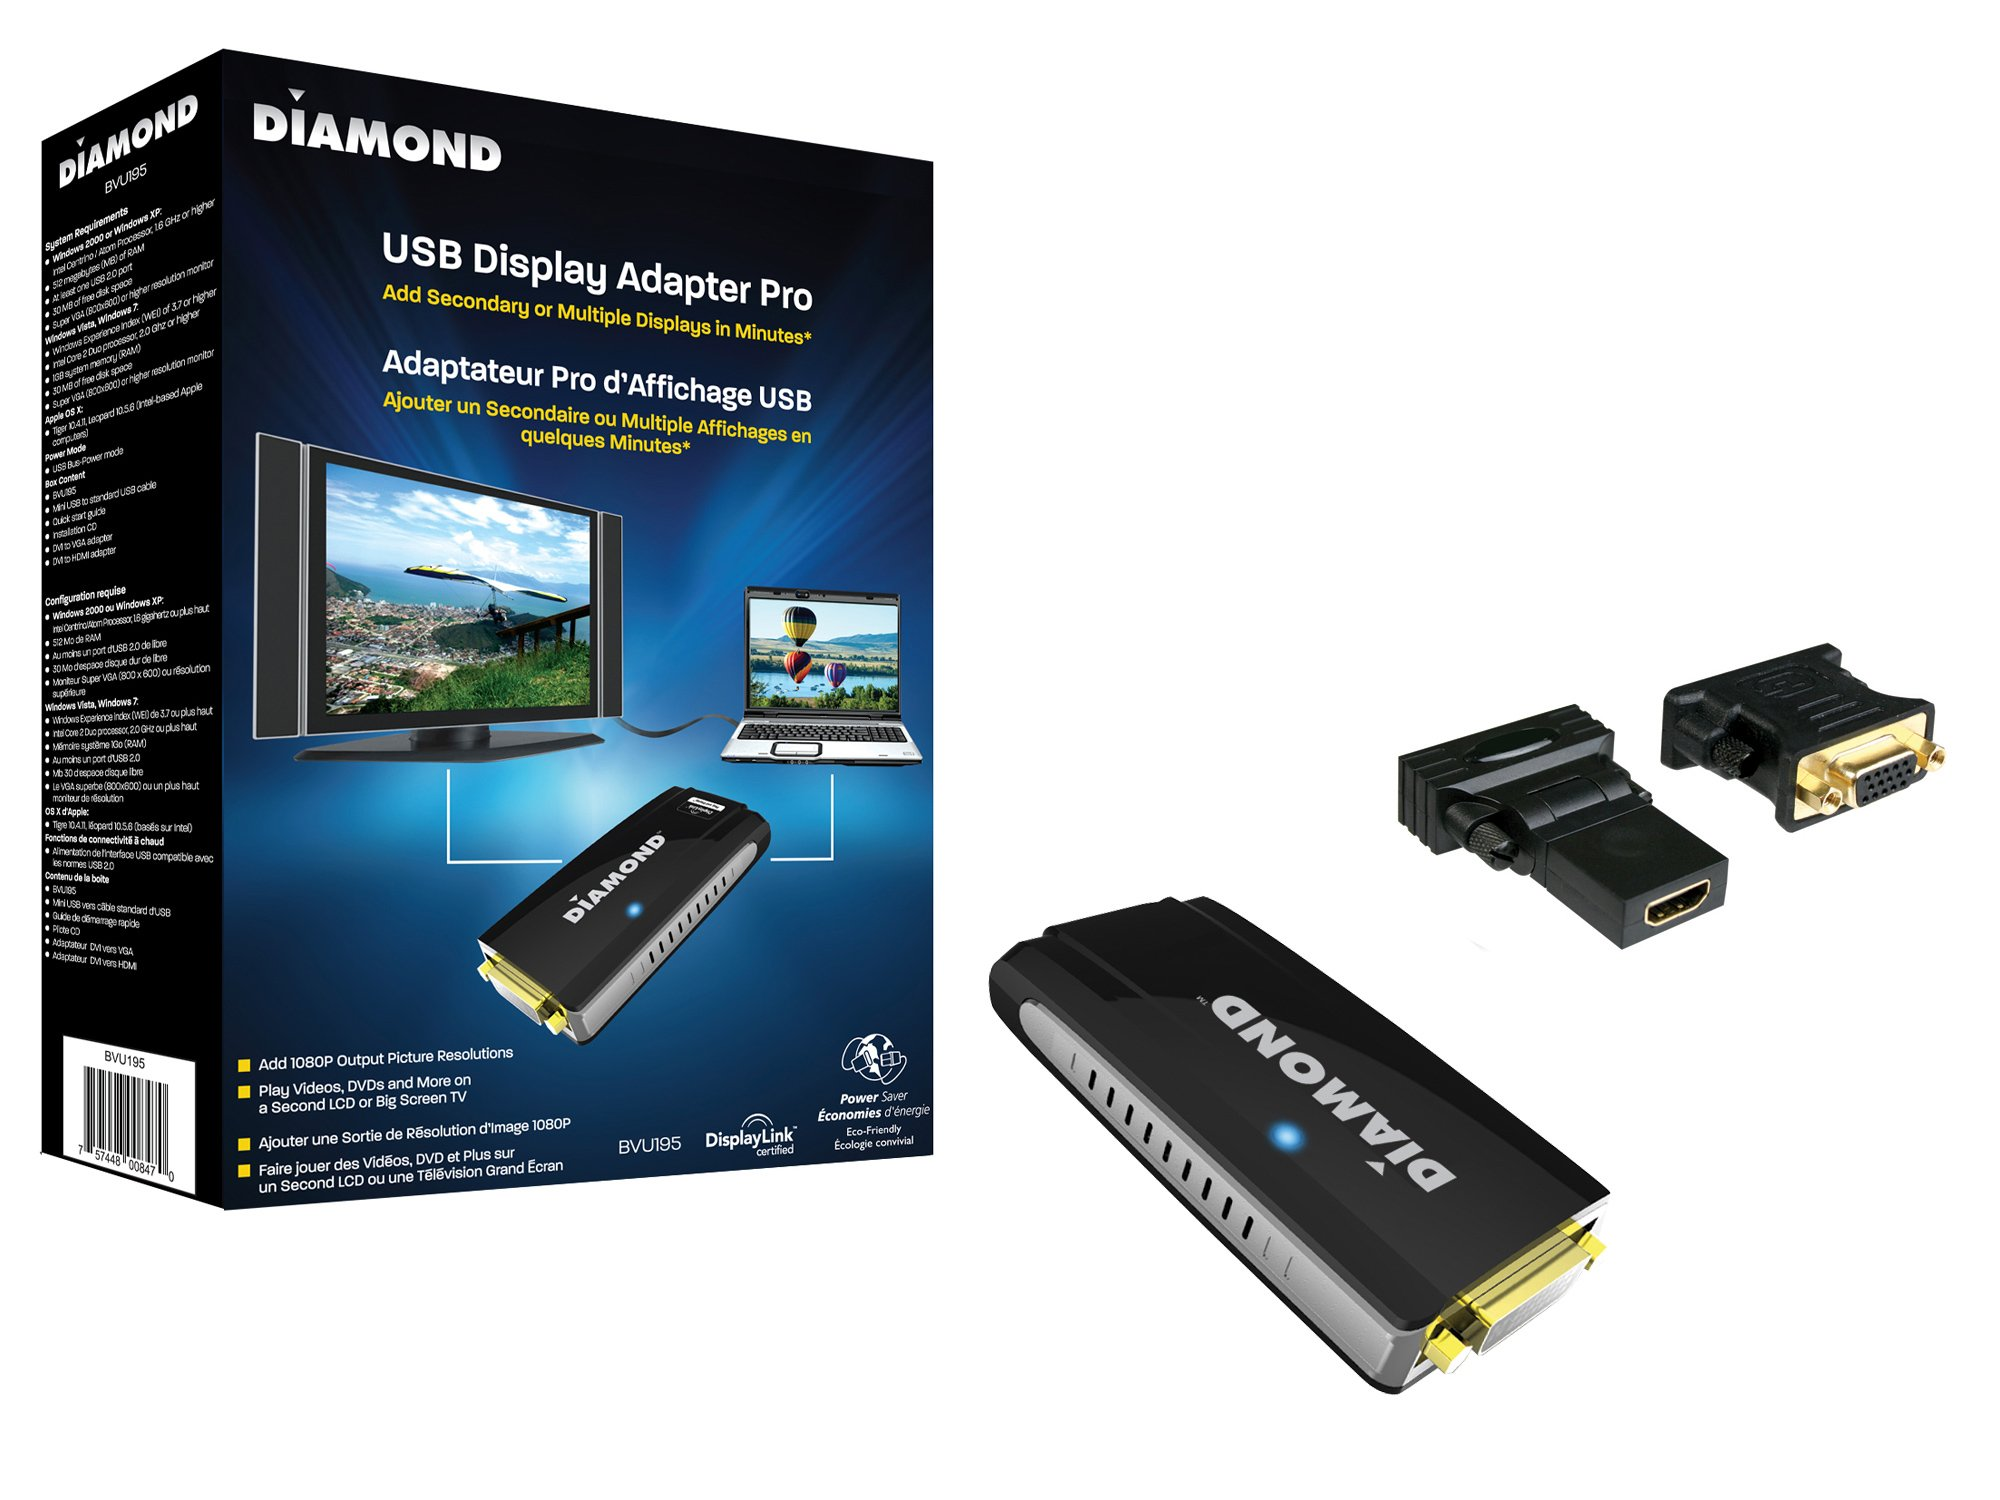 Diamond Multimedia BVU195 USB 2.0 to VGA/DVI / HDMI Video Graphics Adapter up to 2048x1152 / 1920x1080 - Windows 10, 8.1, 8, 7, XP, MAC OS and Android 5.0 and higher